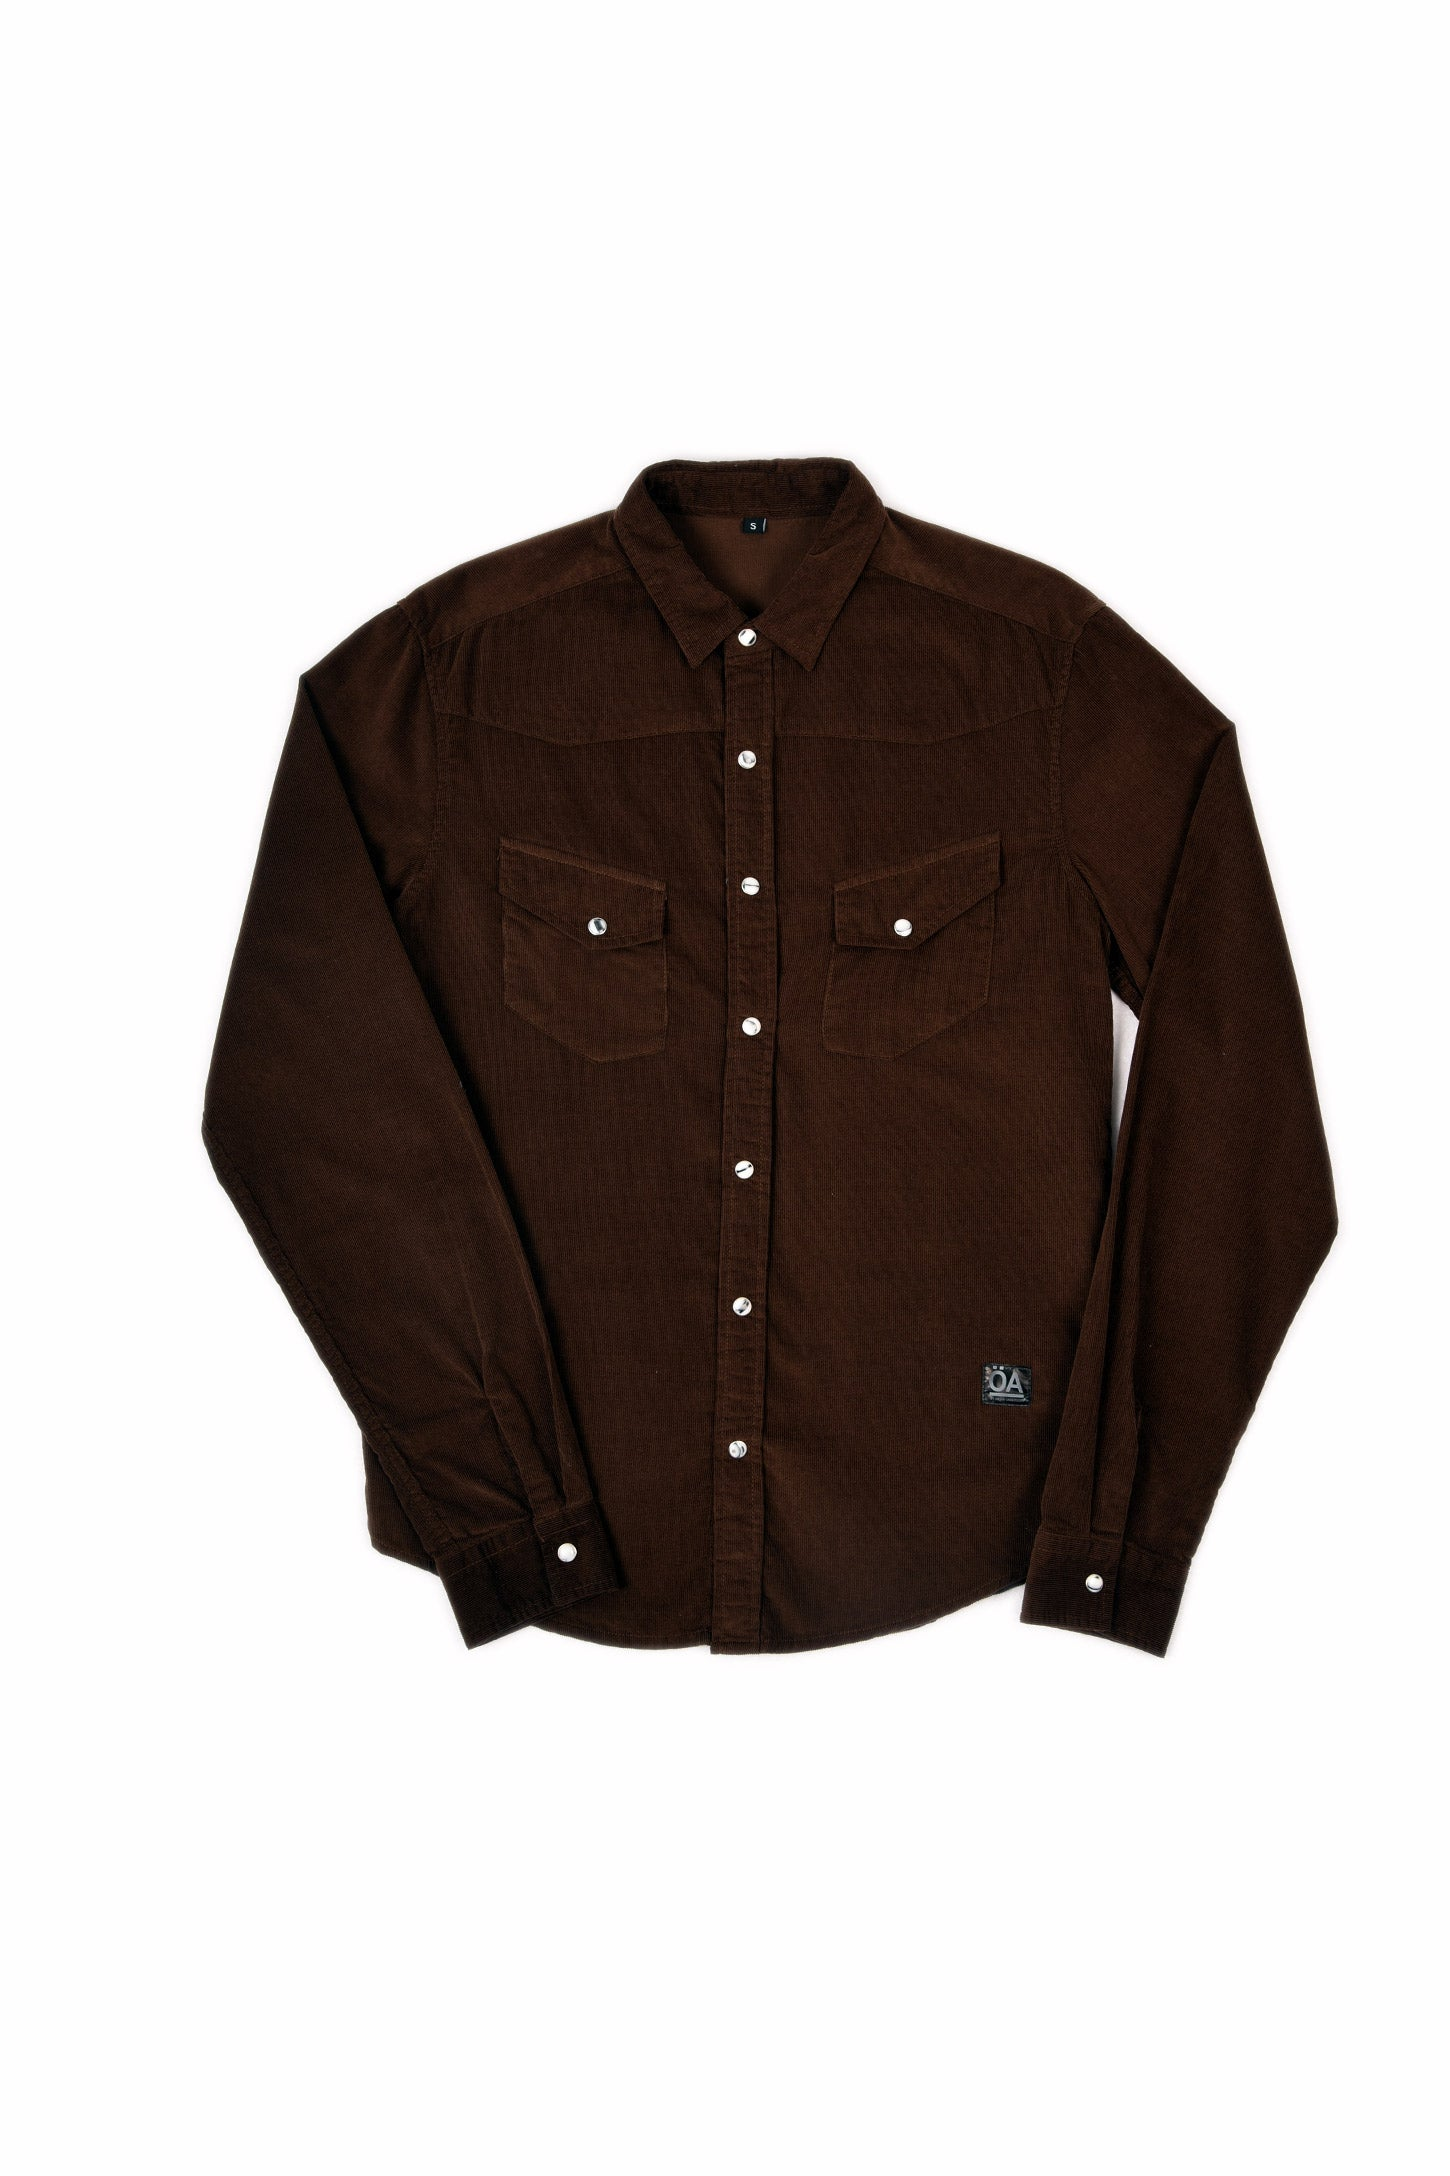 WESTERN SHIRT BROWN CORDUROY